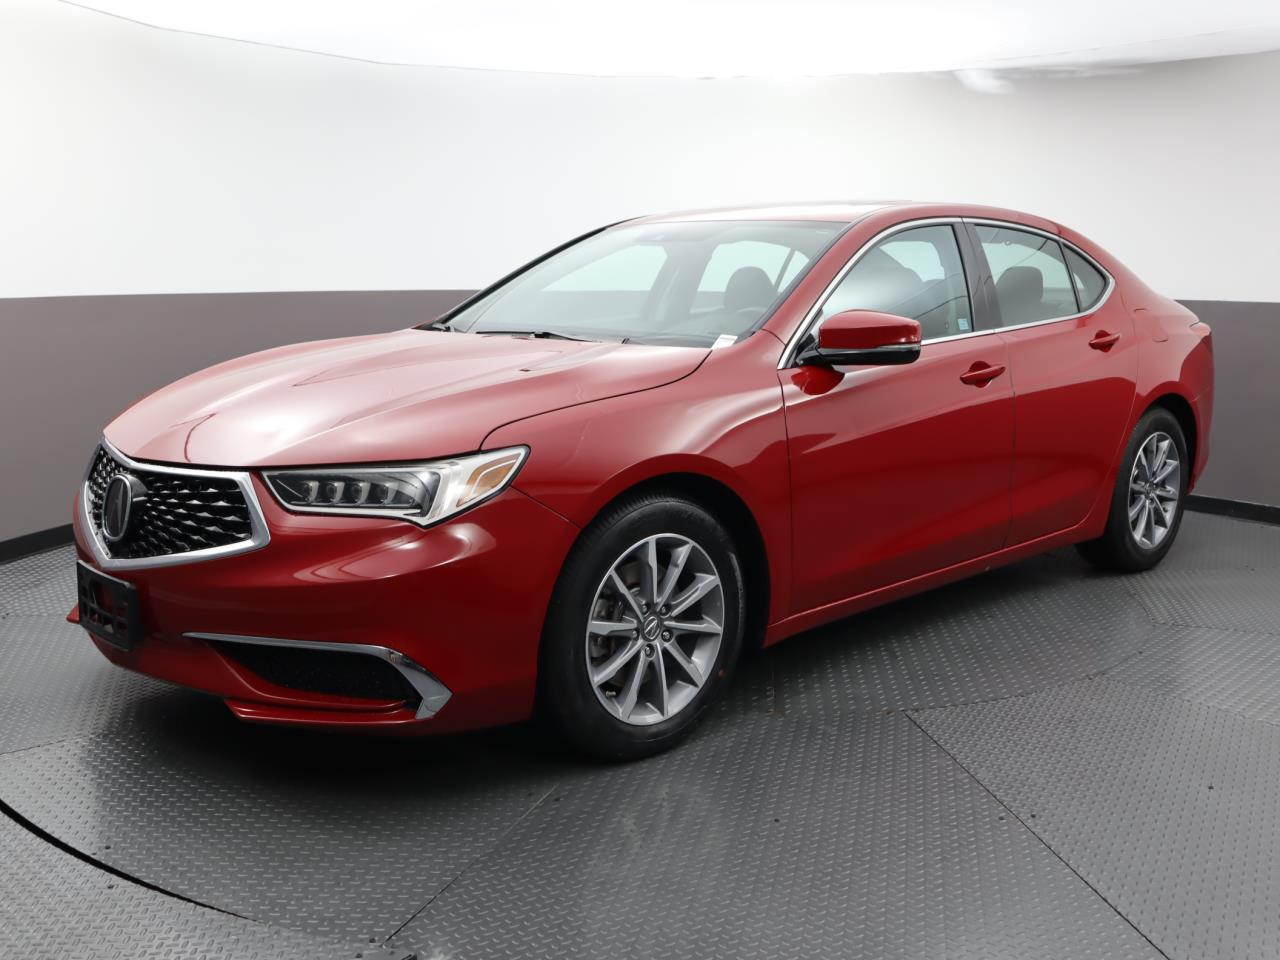 Used ACURA TLX 2018 WEST PALM